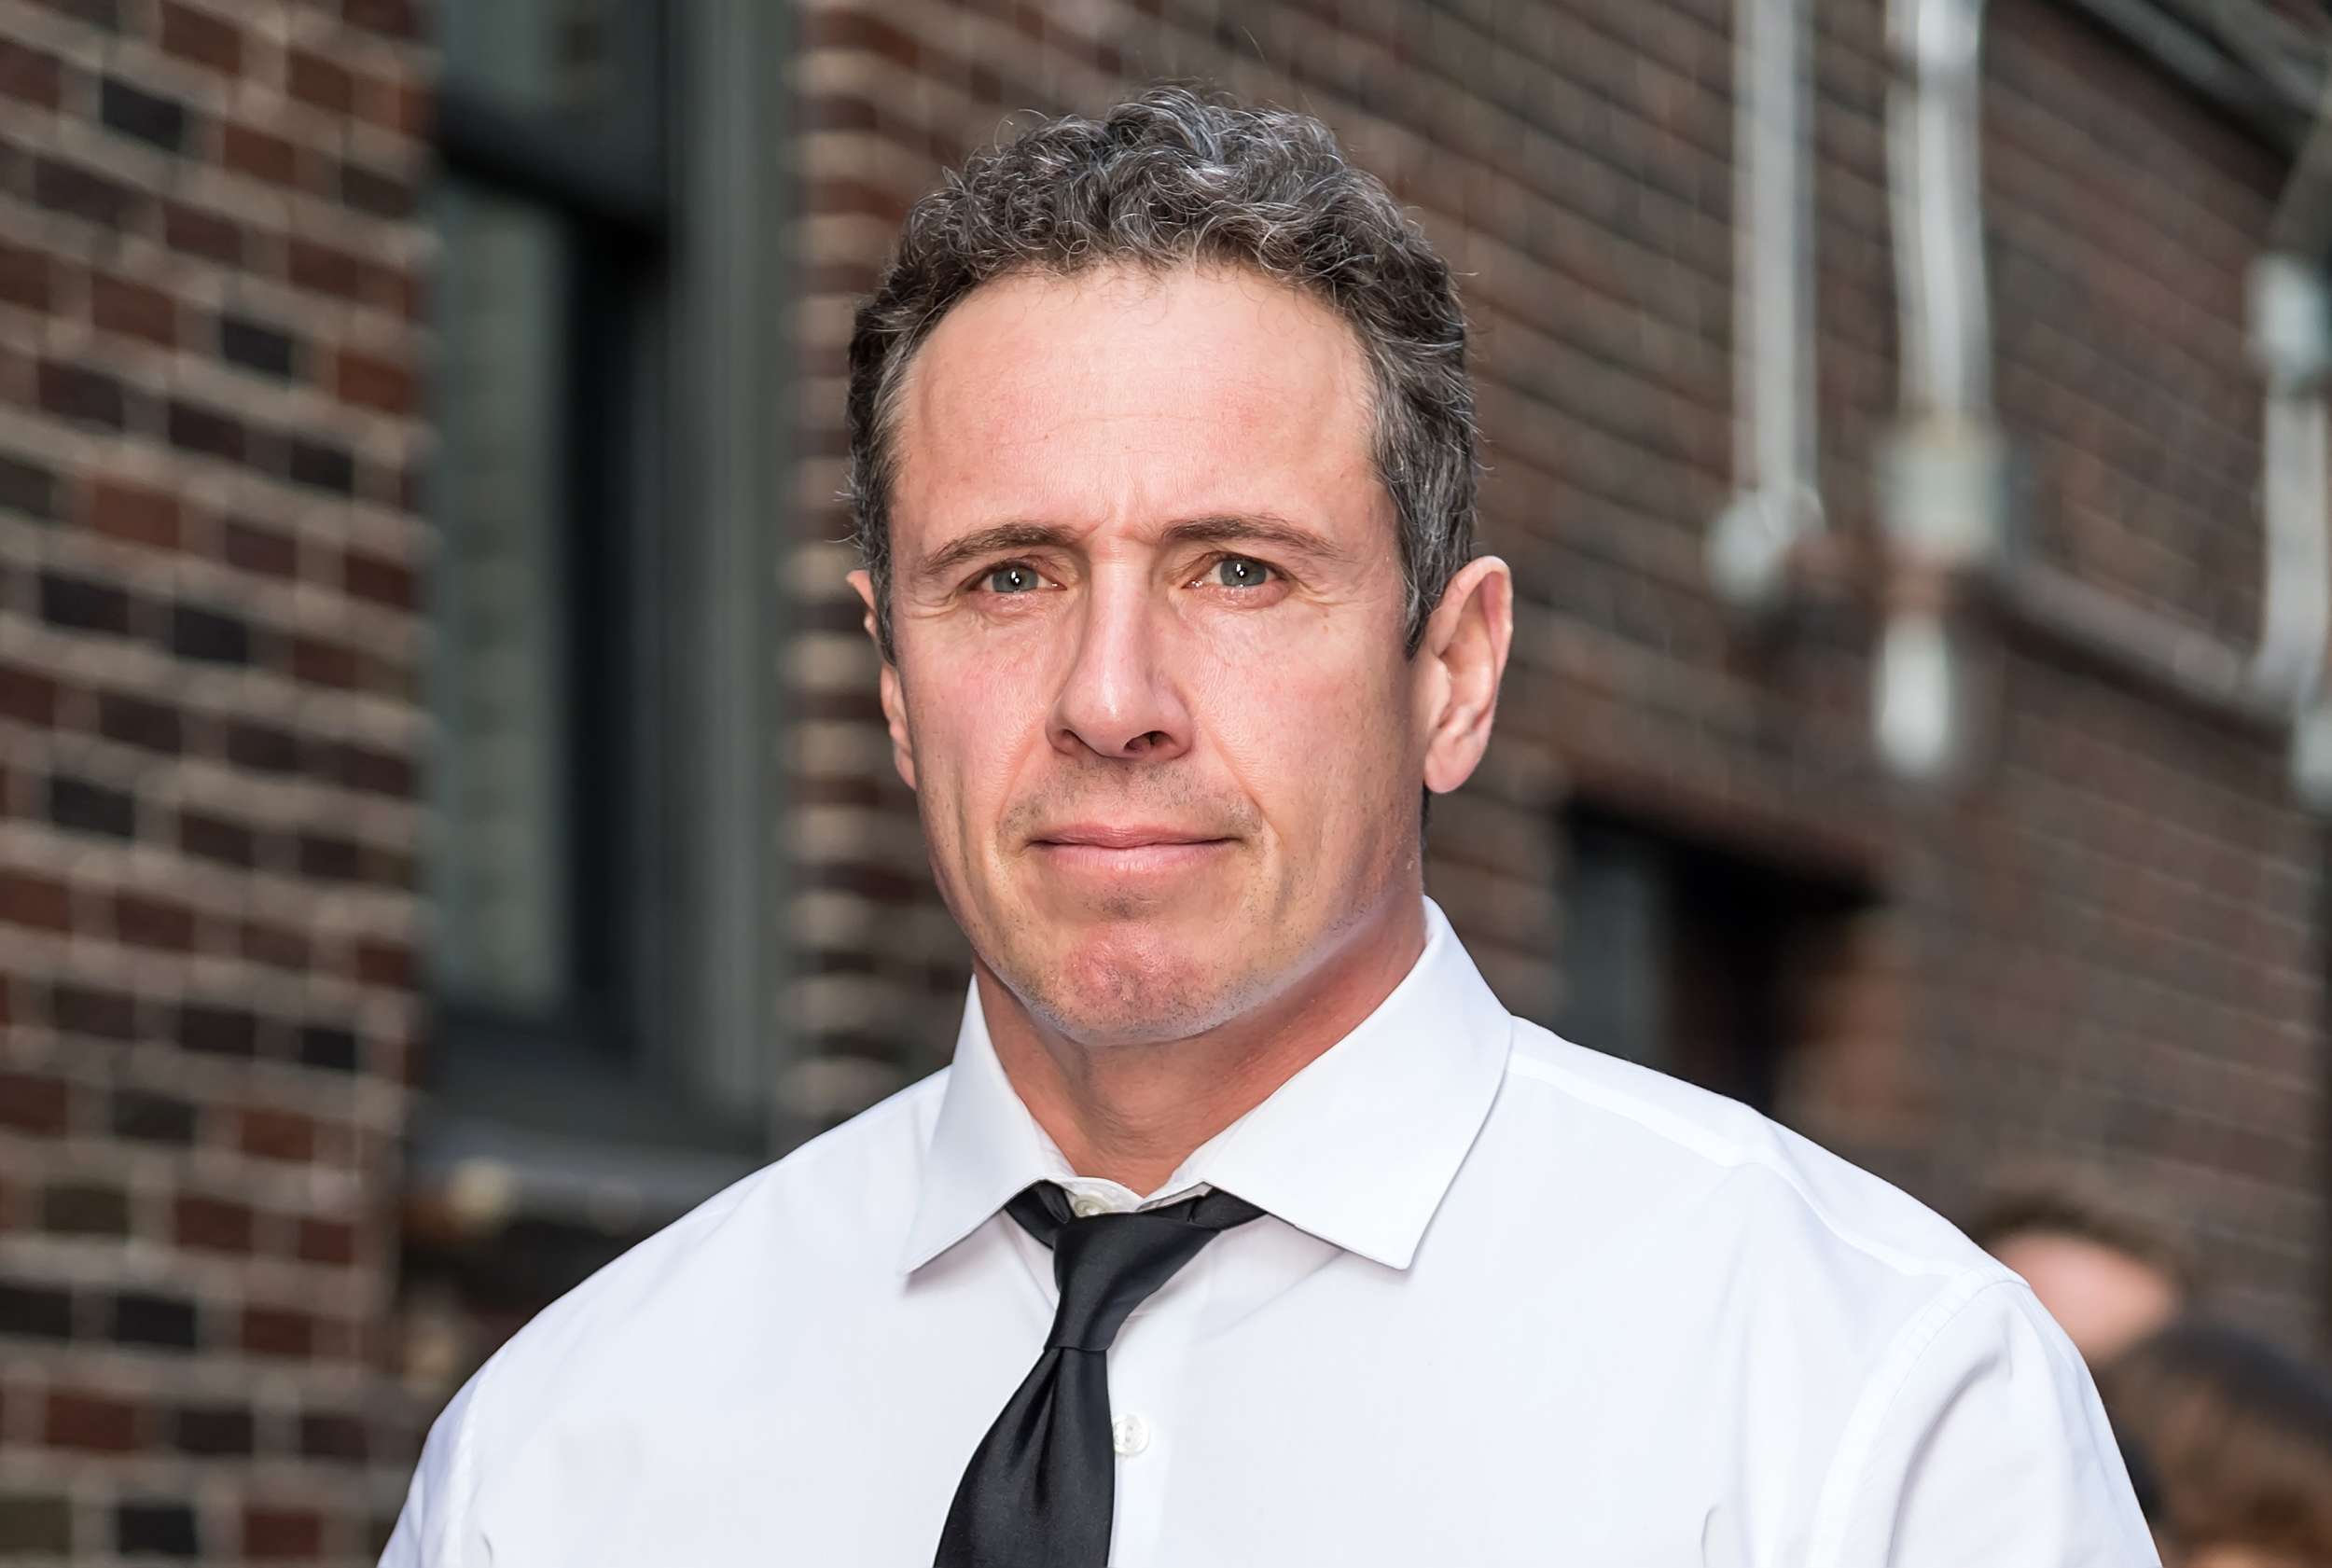 CNN's Chris Cuomo says he urged his brother to resign 'when the time came'